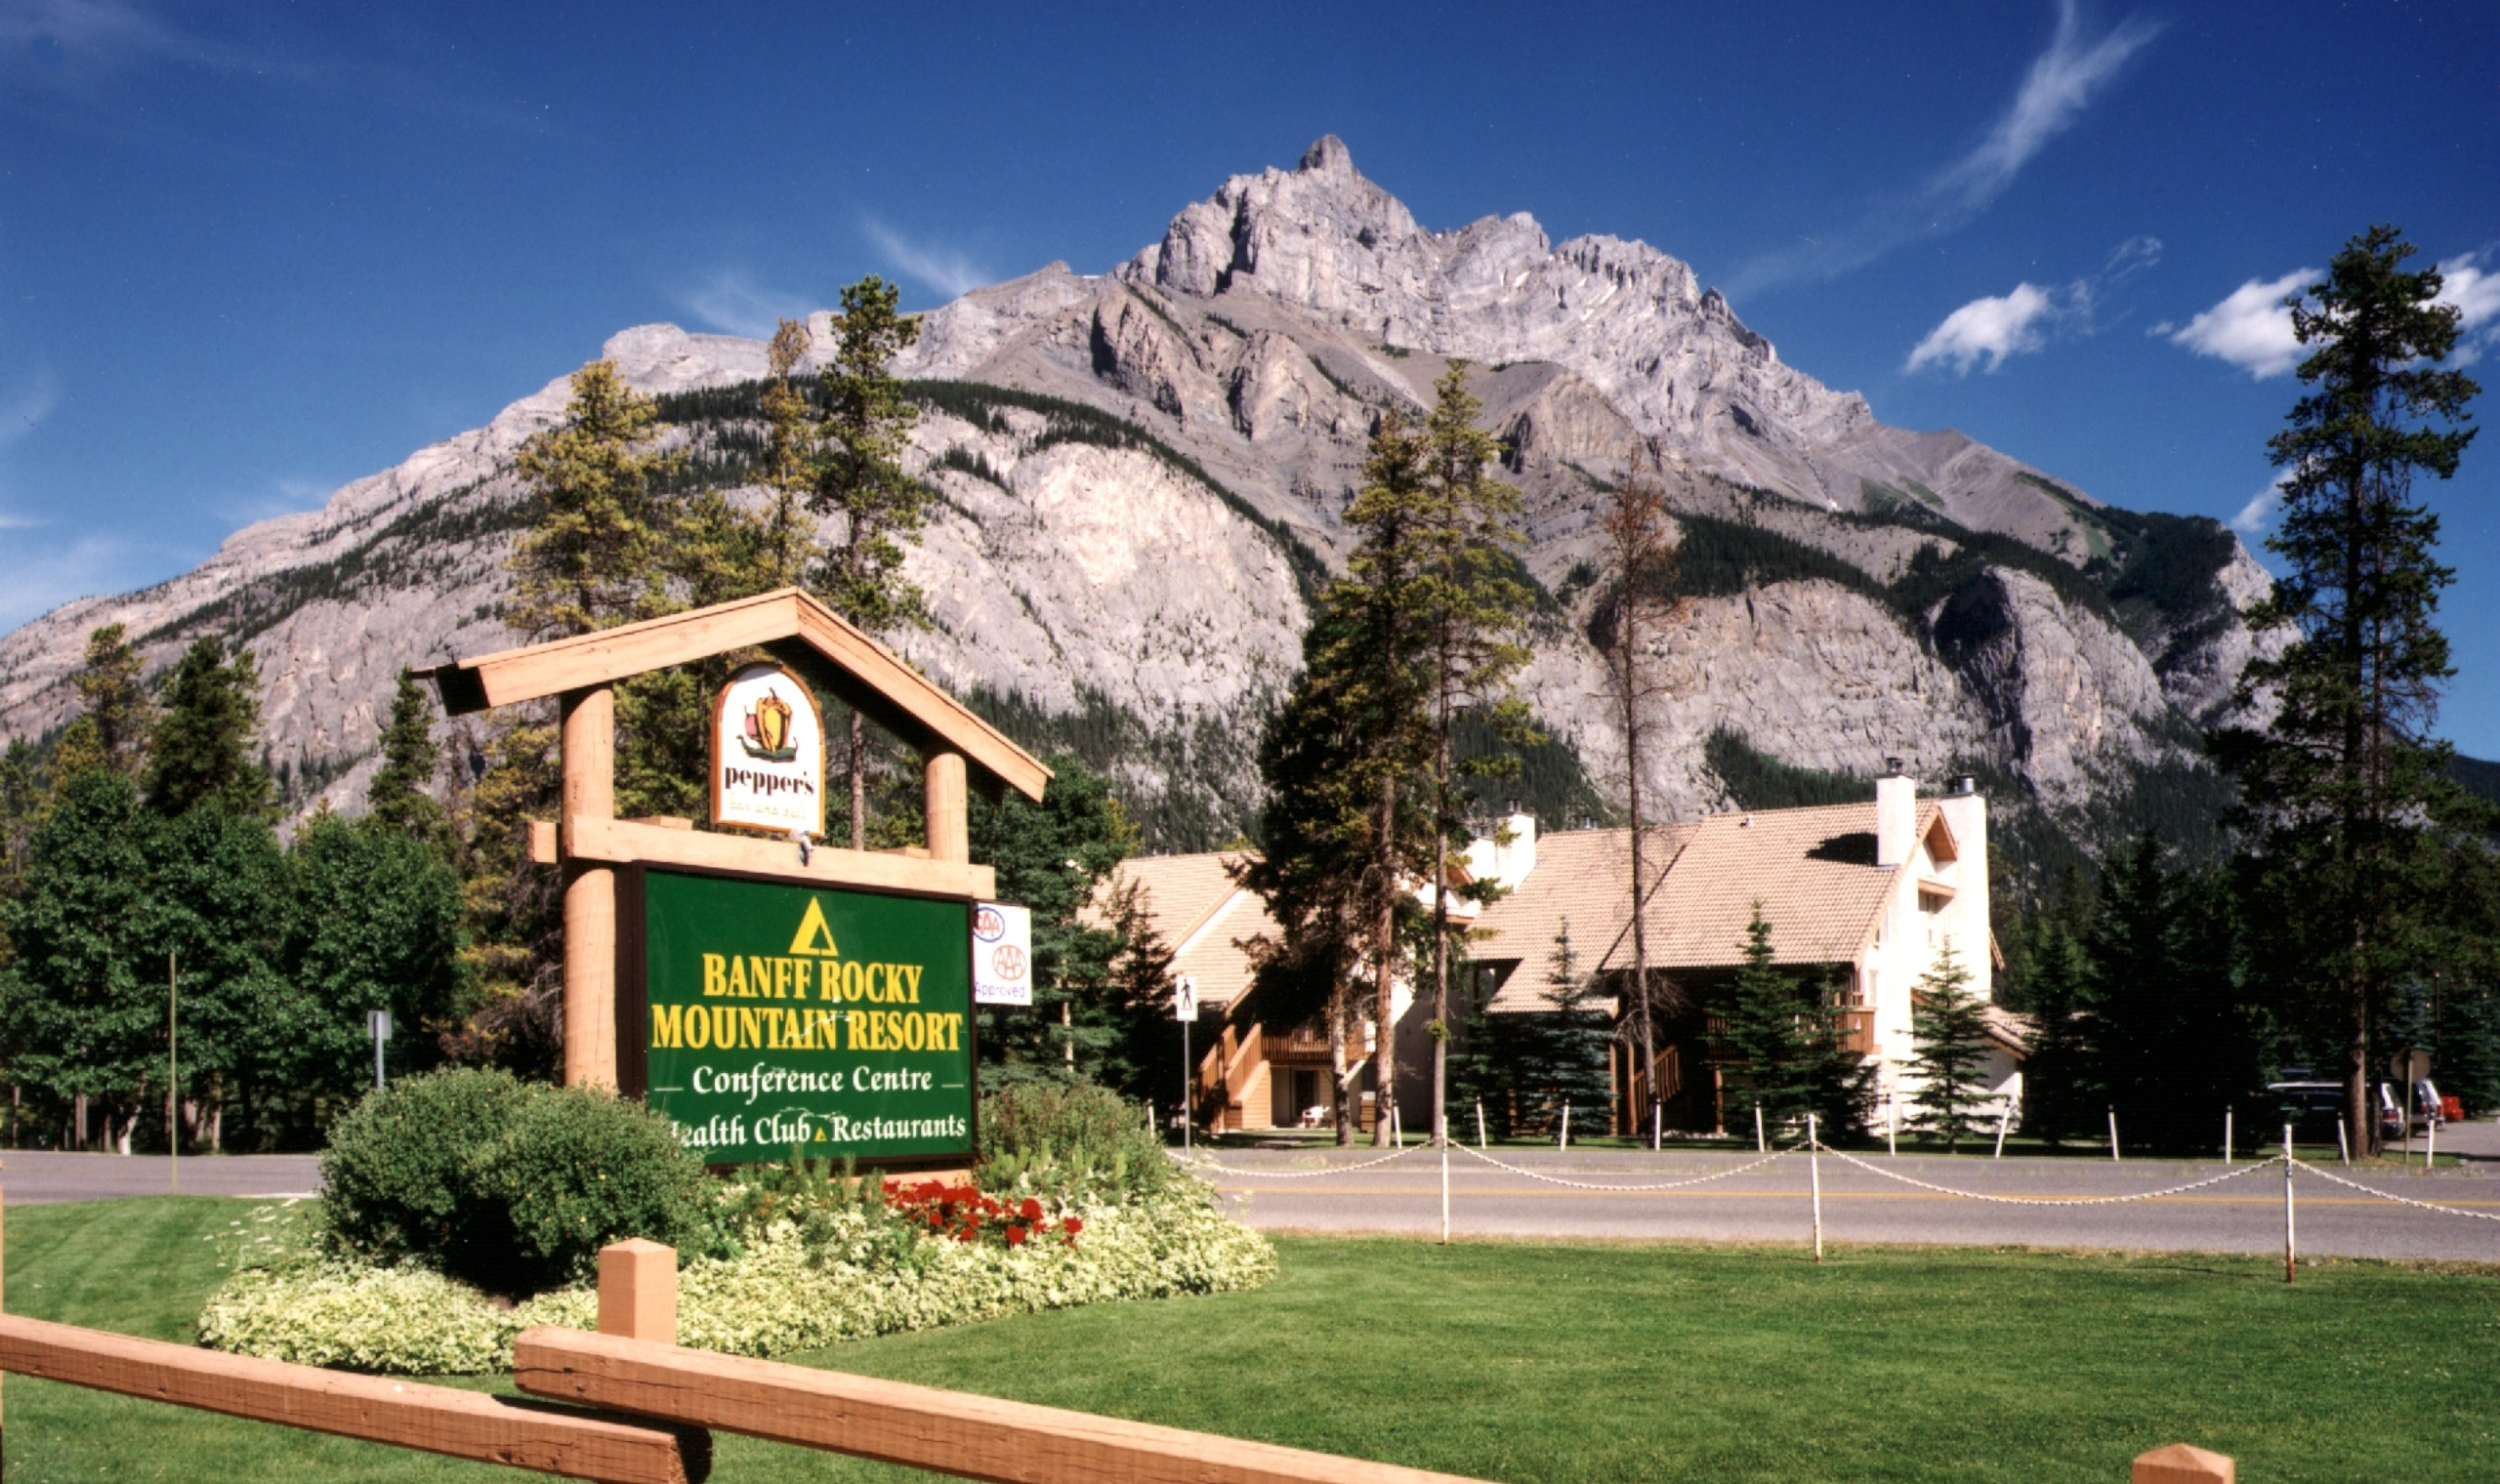 Banff rocky mountain resort banff canadian affair for Rocky mountain lodges